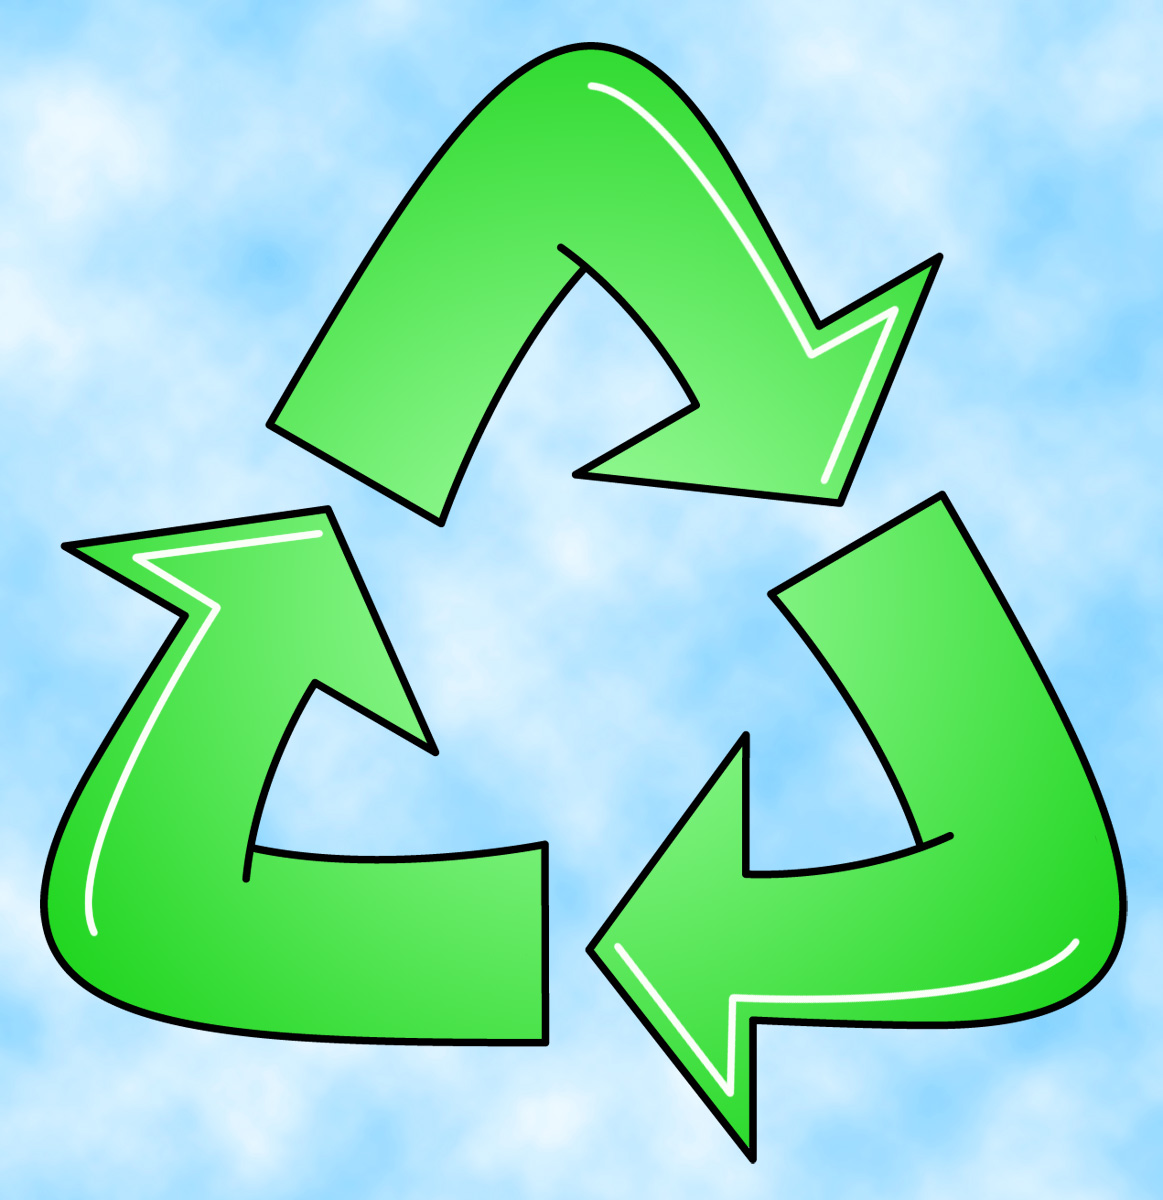 Recycle Logo Clipart - Clipart Kid